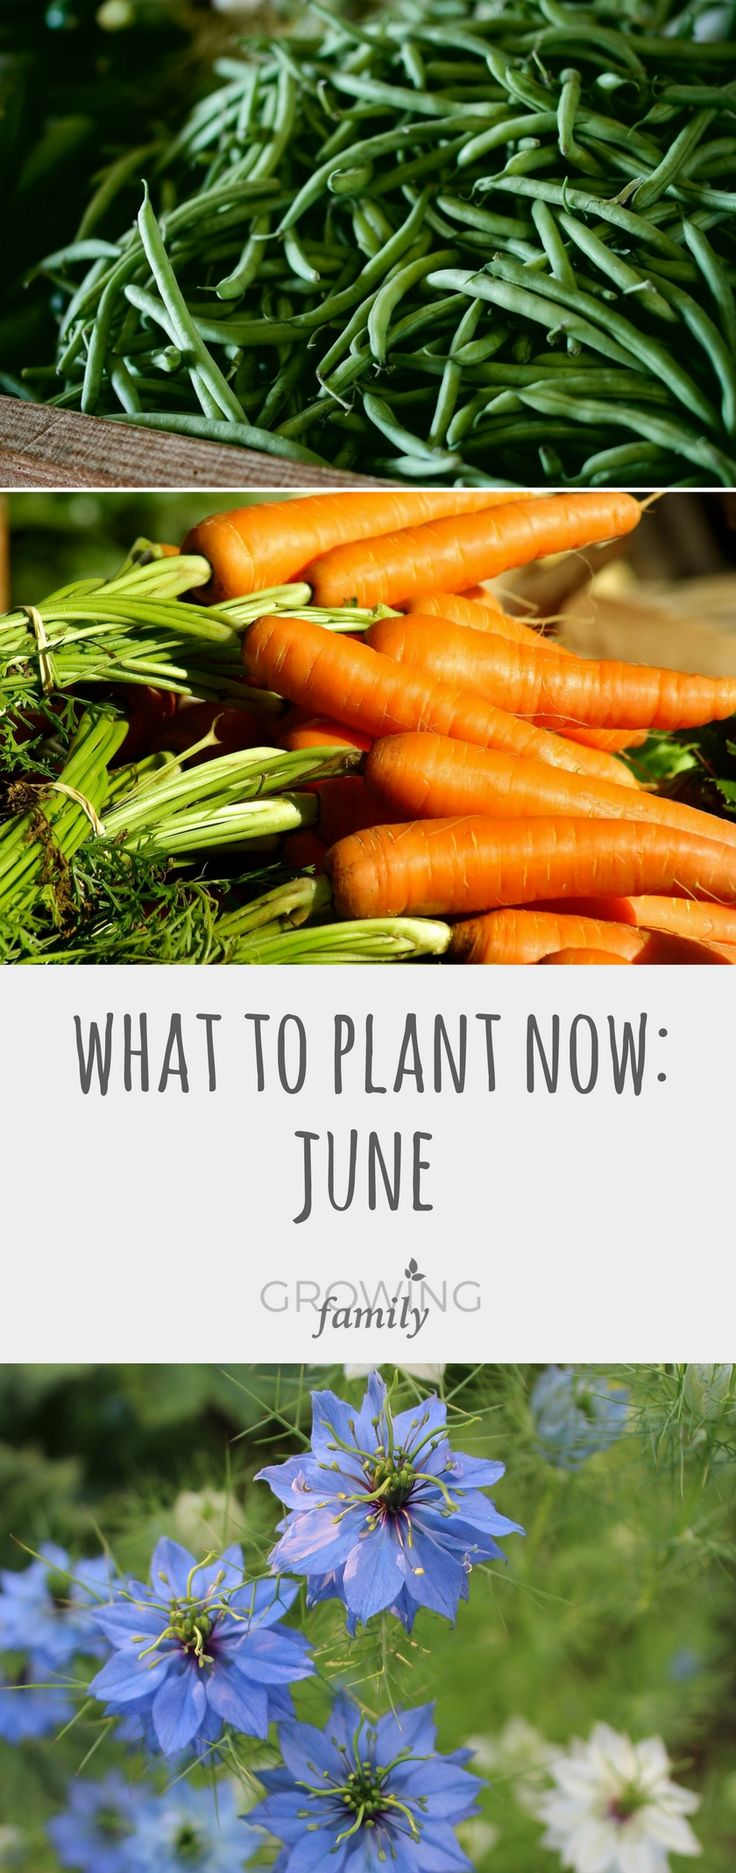 Beautiful vegetable and flower gardens - Summer May Be Upon Us But There Are Still Plenty Of Vegetable Crops And Flowers